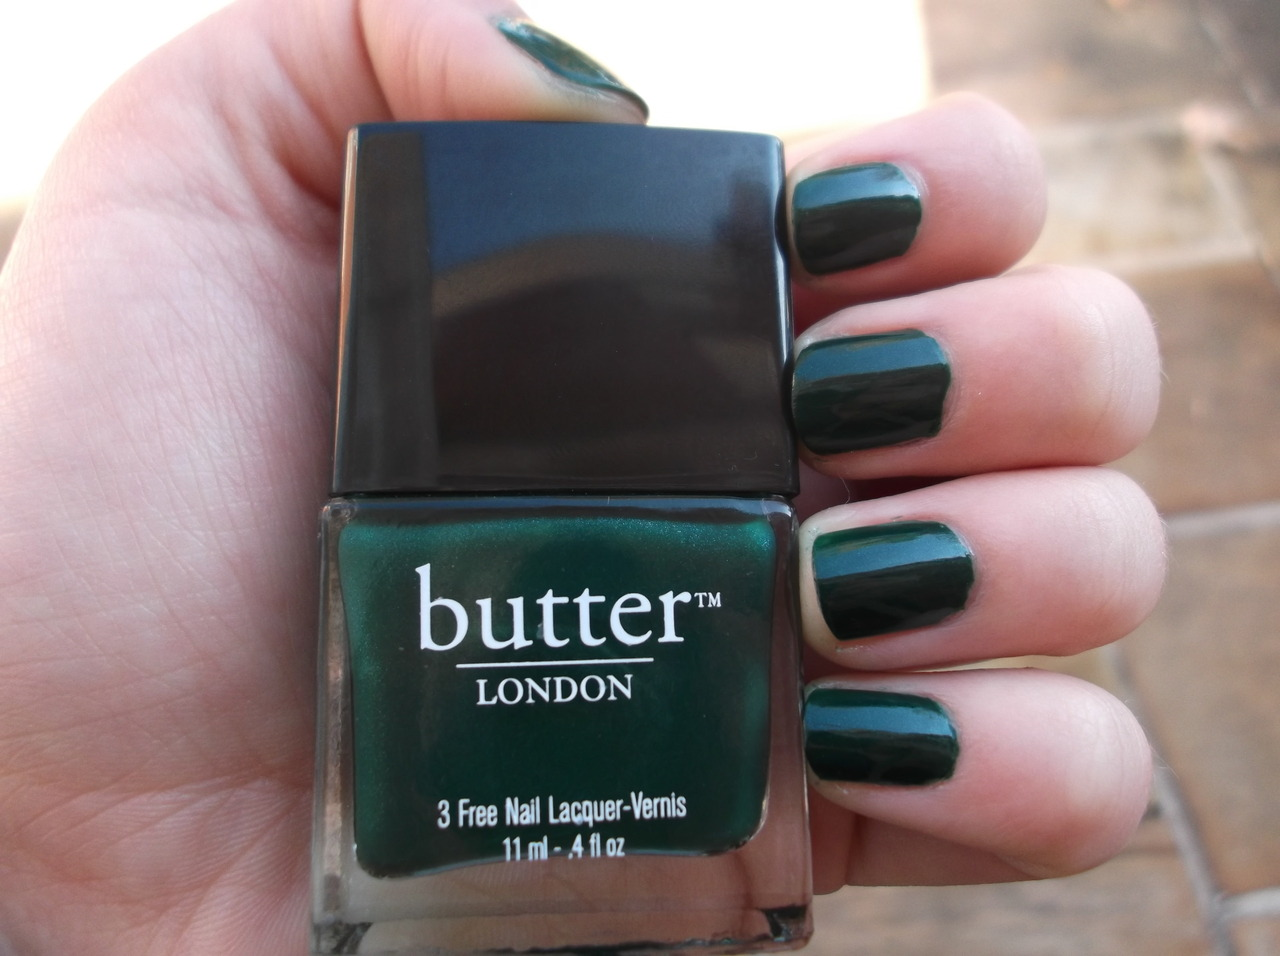 Today's Nails: Butter London // British Racing Green This is the last polish from my mildly excessive Butter London Haul back in September. My material soul had been longing for this frosty, dark forest green polish every since I saw it mentioned in a beauty video last fall, and I finally let myself get it at the 2-for-1 Ulta sale. After I brought it home, I wasn't sure about my purchase, and it took me a long time to try it out on my nails. But when I wore it for the first time last week, I fell in love all over again. The shimmer is unnoticeable unless you're in direct sunlight, and it only makes the polish look even more festive. It's dark, beautiful, and 100% seasonally appropriate. I kind of just want to wear it forever. Excellent application, opacity and overall quality, as to be expected of BL polishes.